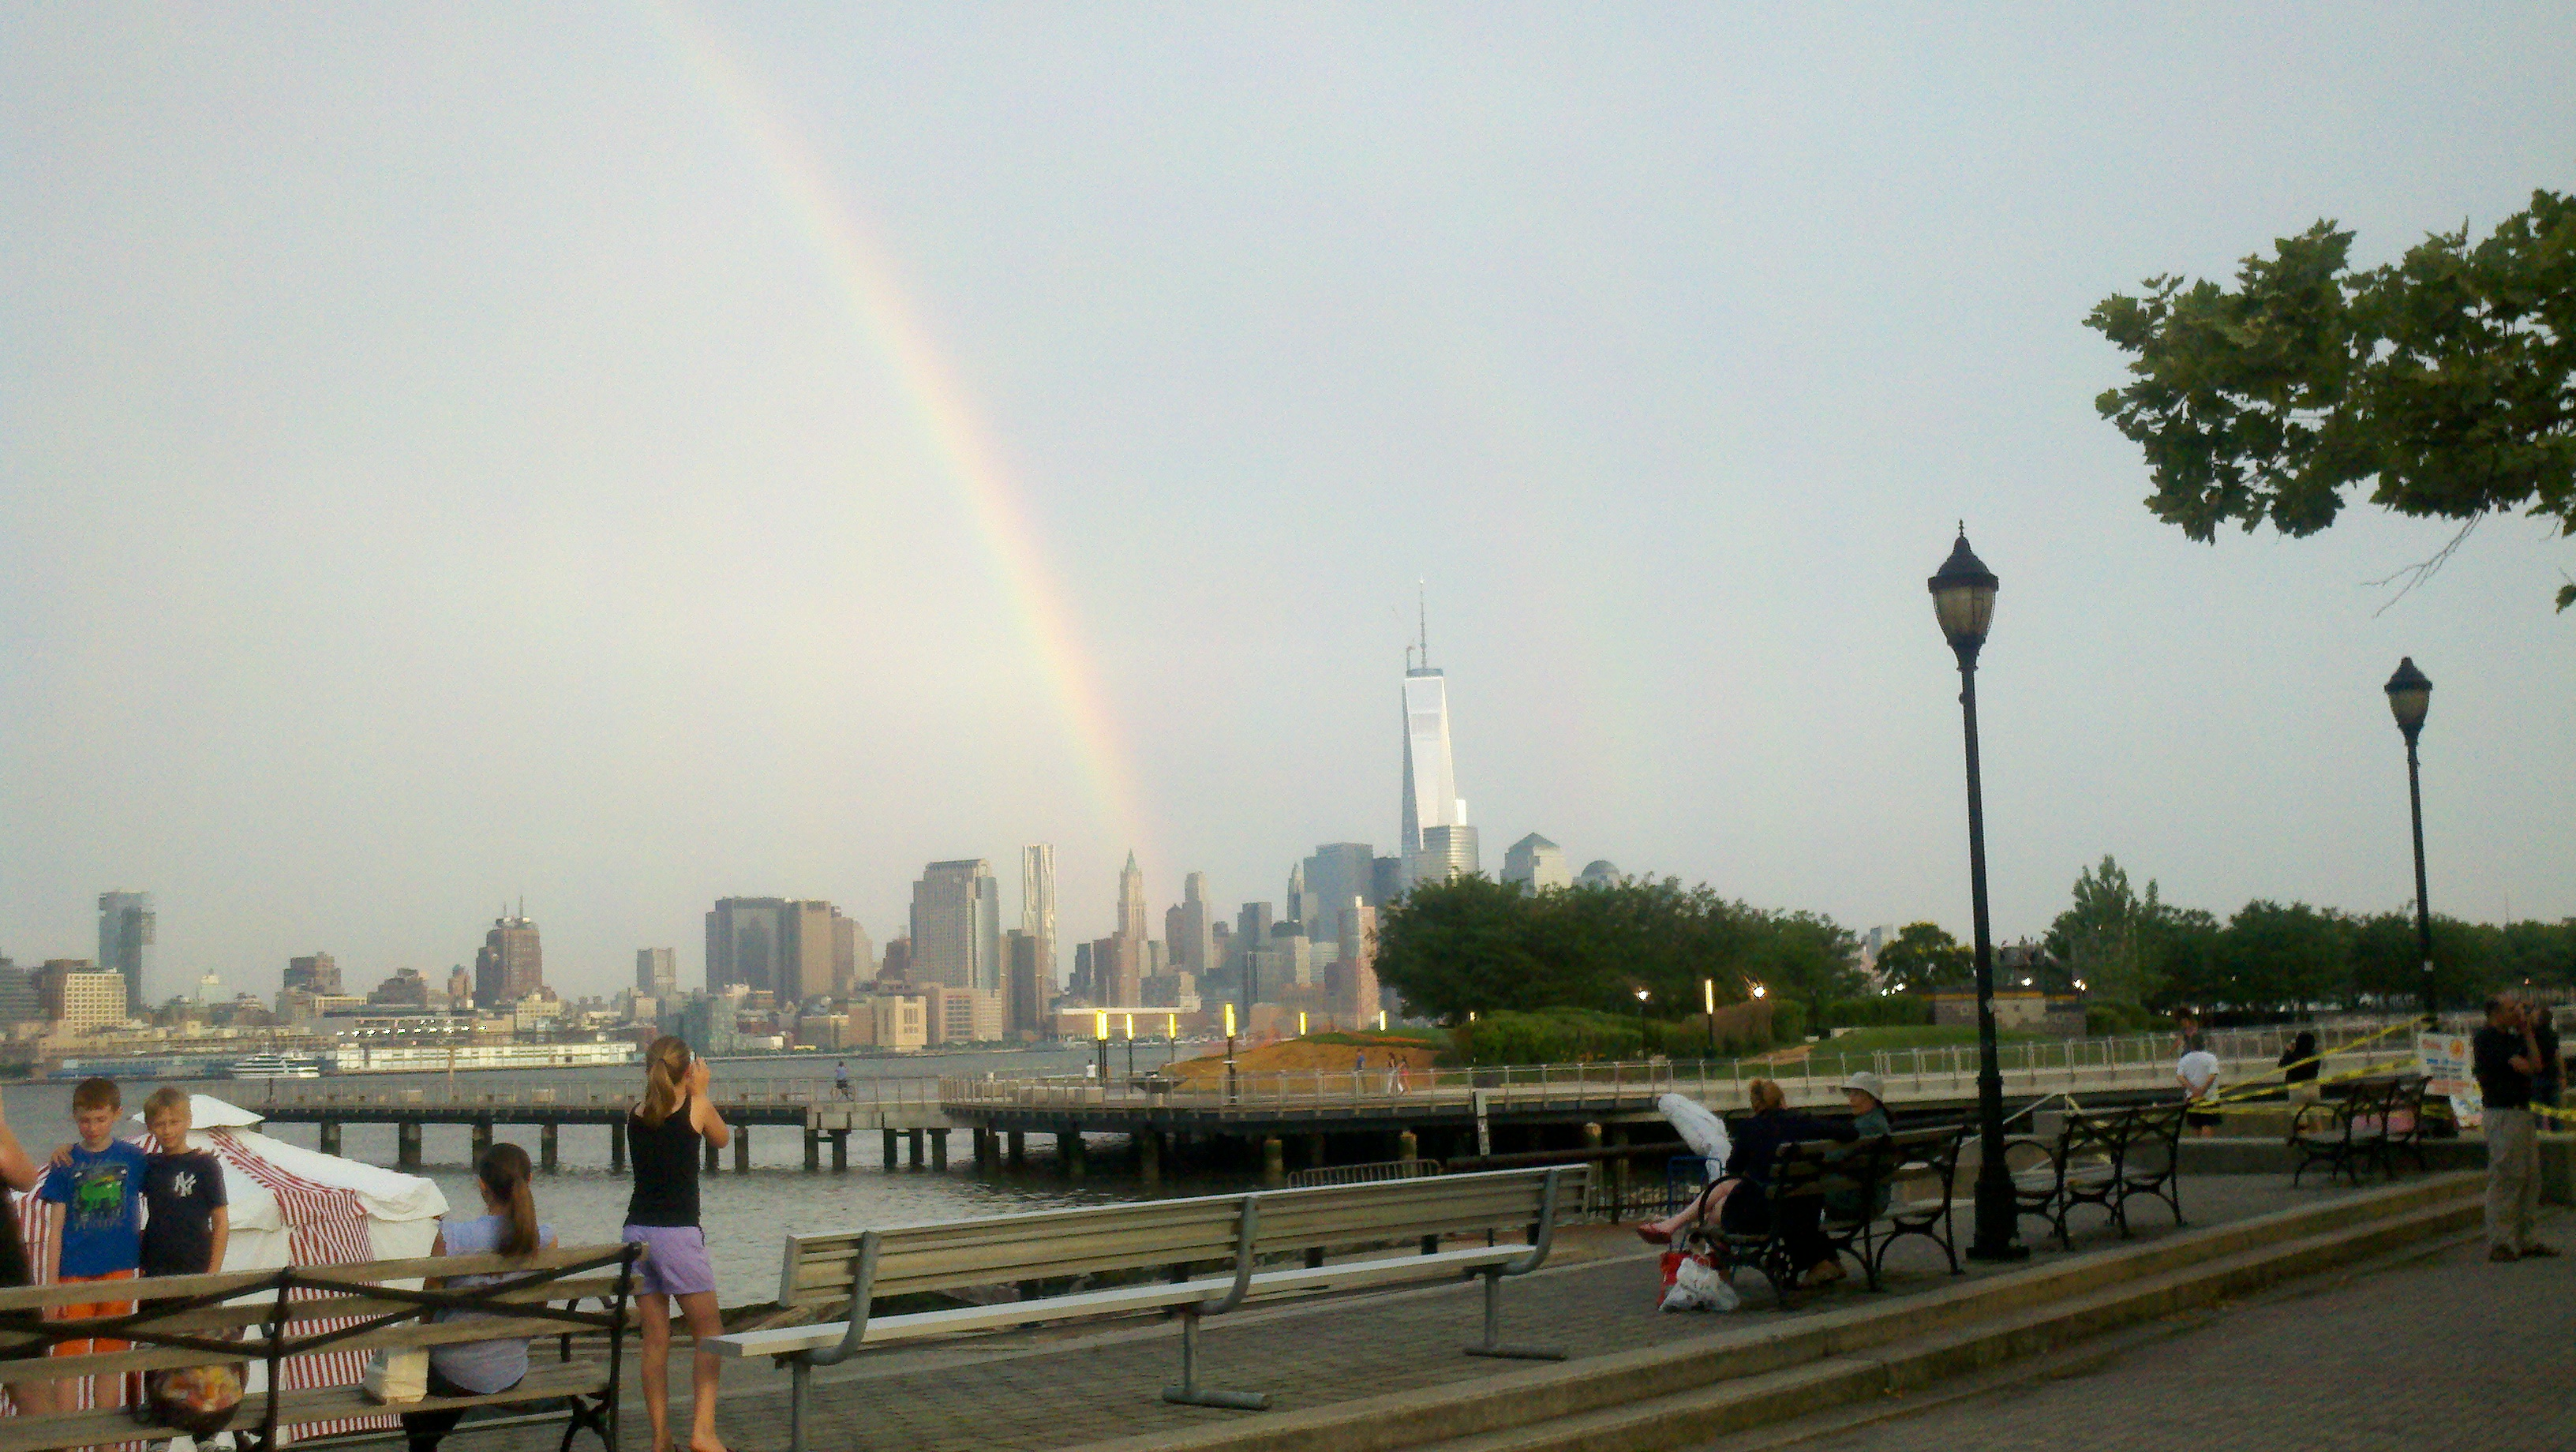 Rainbow next to the Freedom Tower